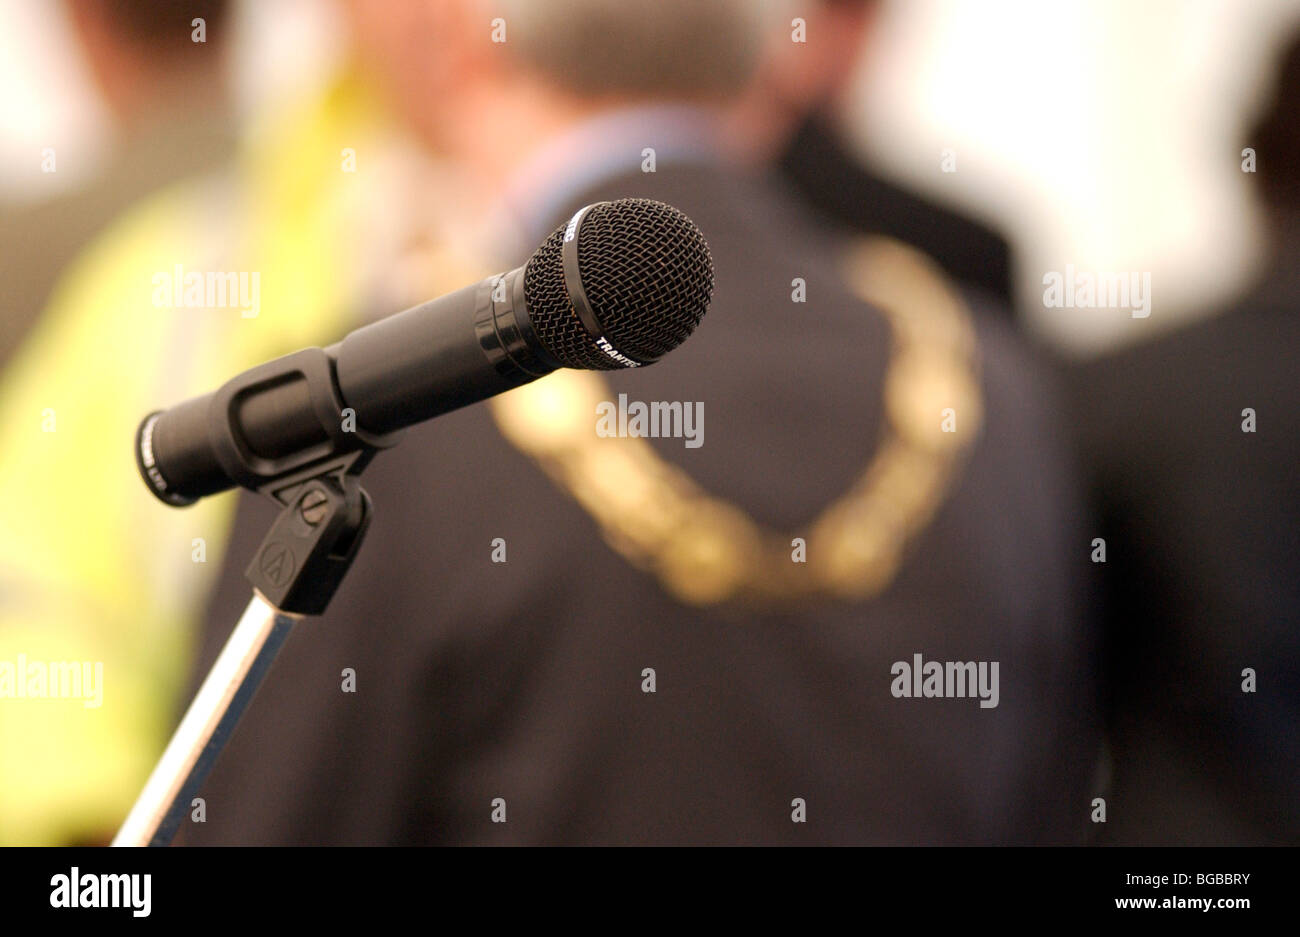 Royalty free photograph of a microphone at a public event with local major at local authority event London UK - Stock Image